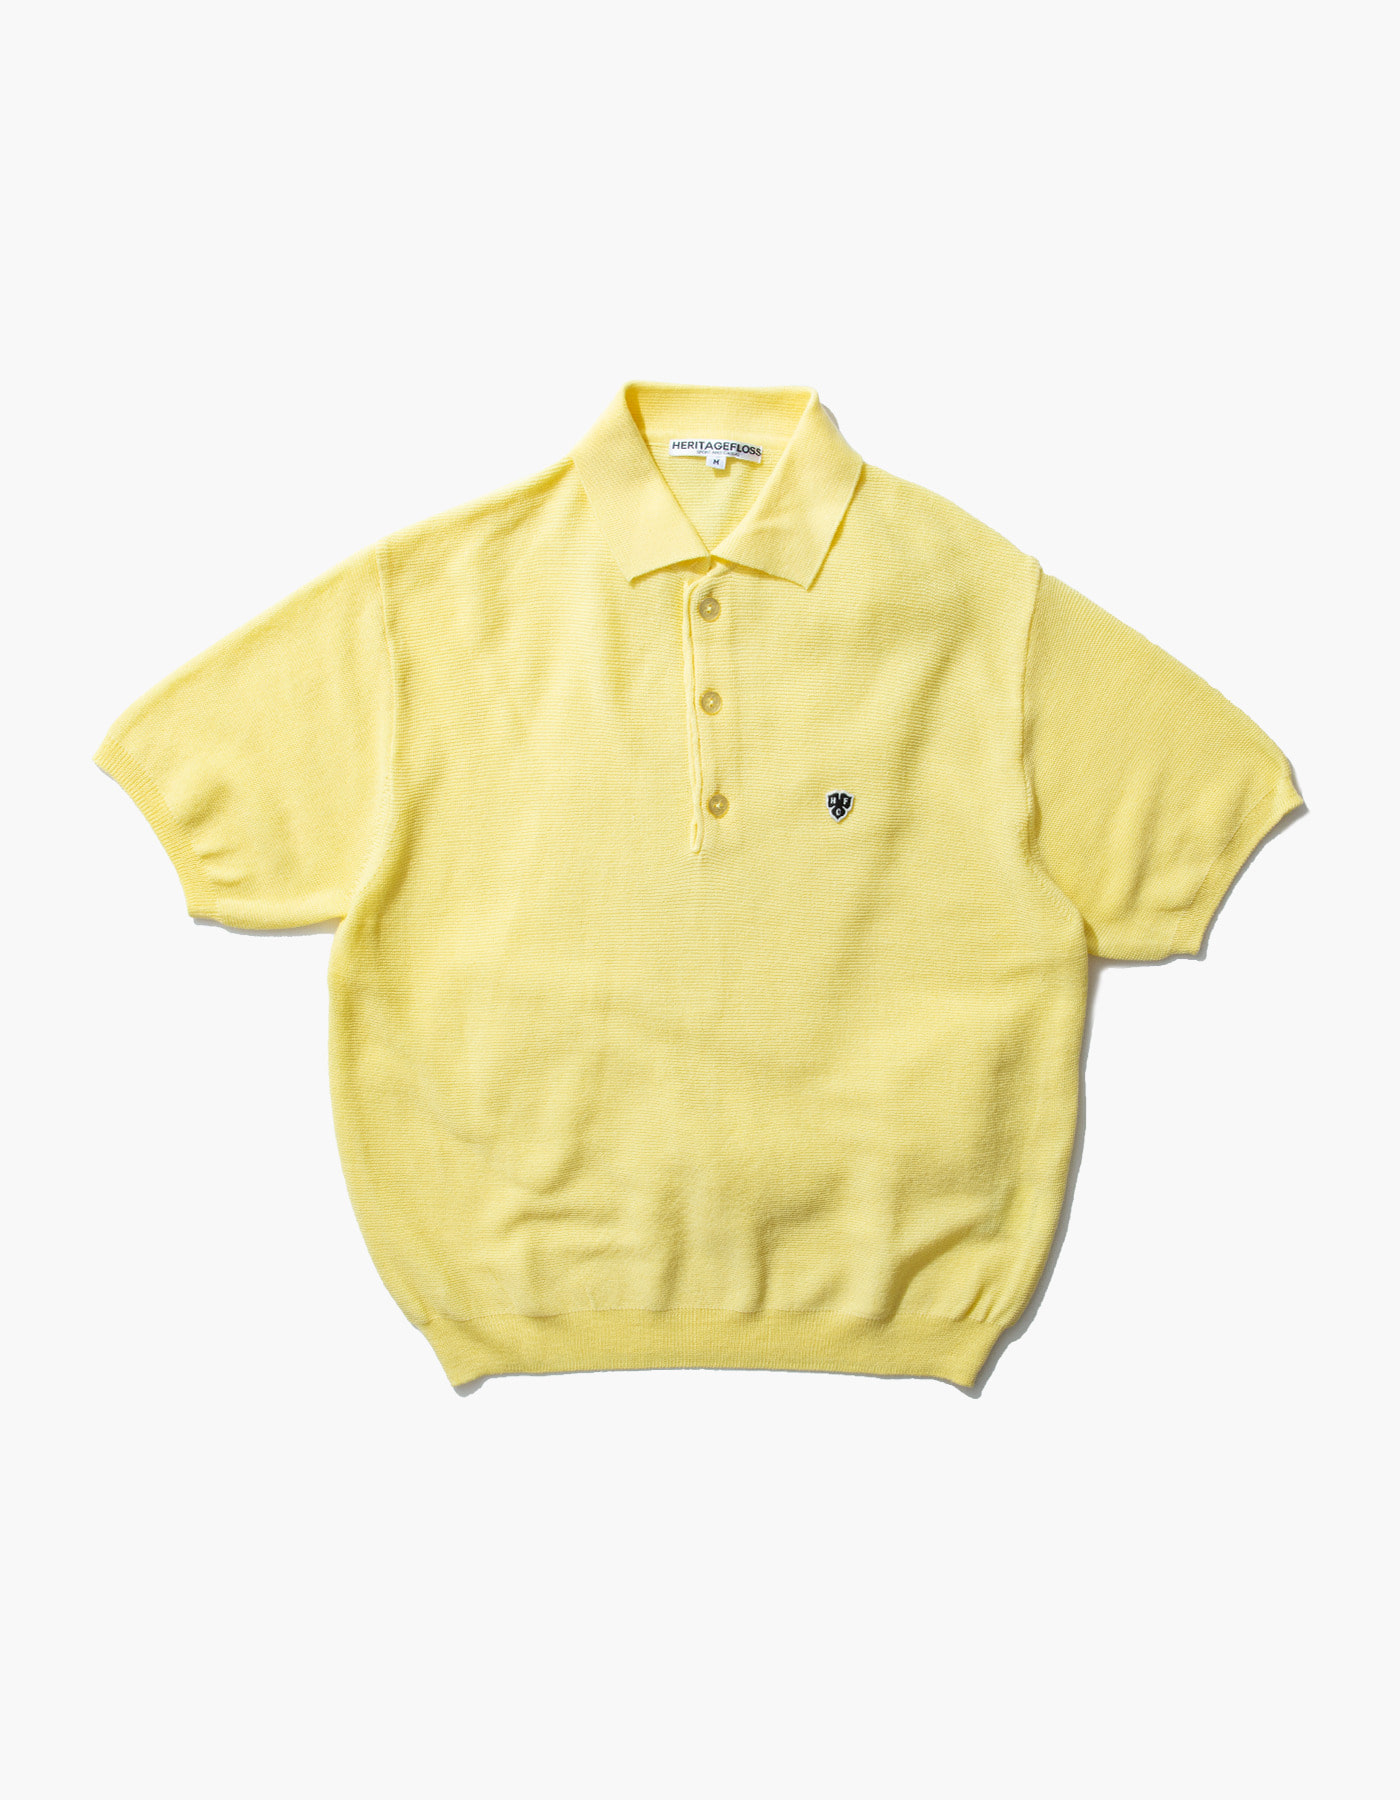 HFC CLOVER POLO SHIRTS / LIGHT YELLOW